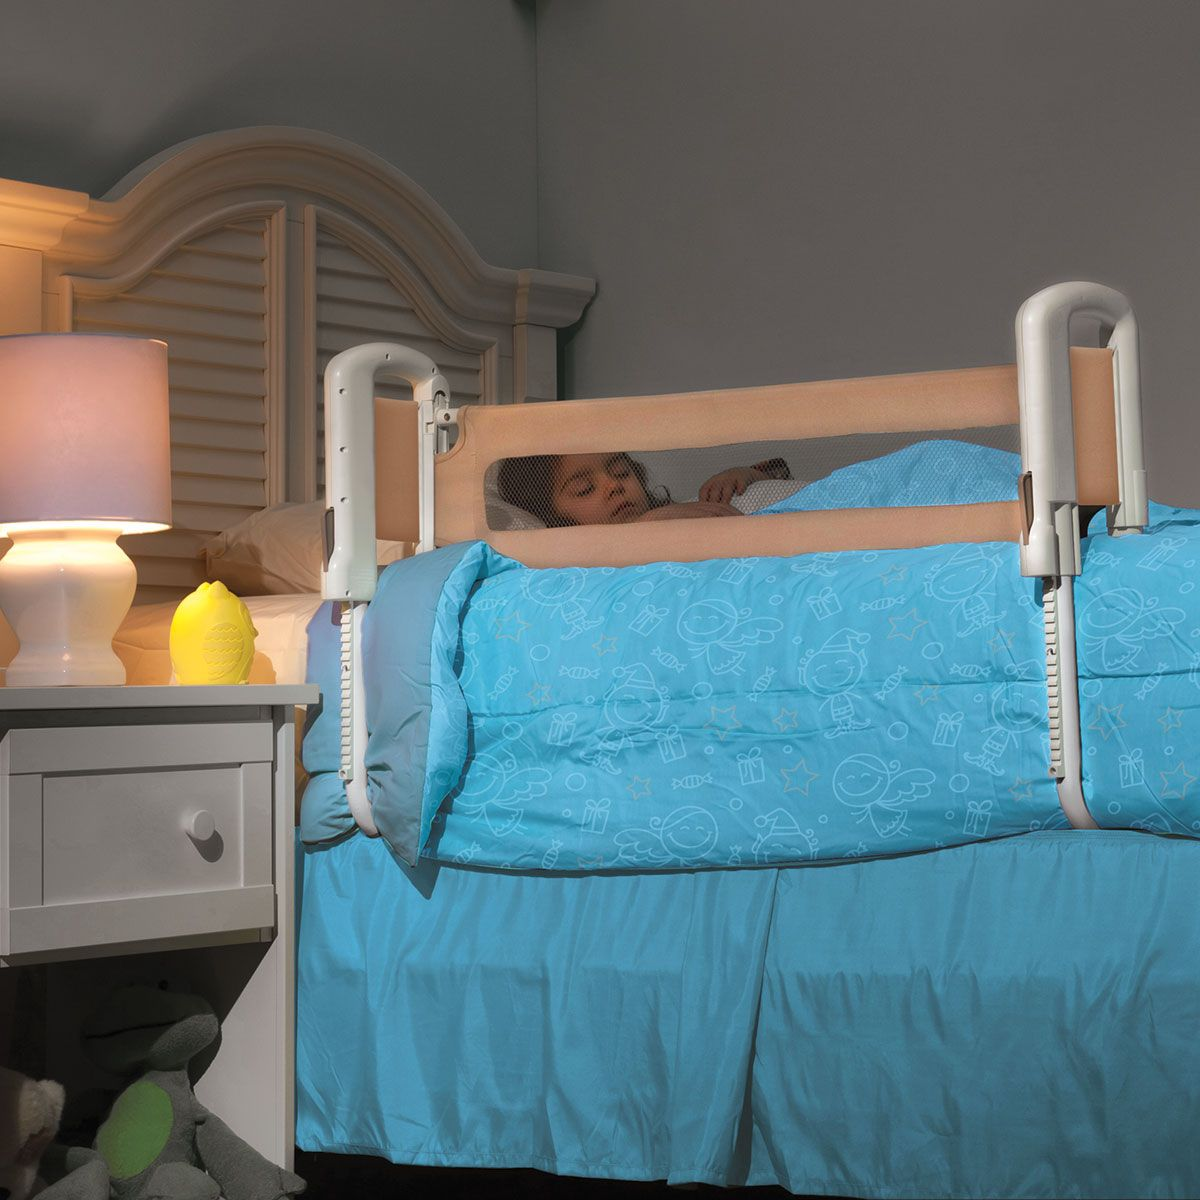 Safety 1st Bed Rail - Babyroad